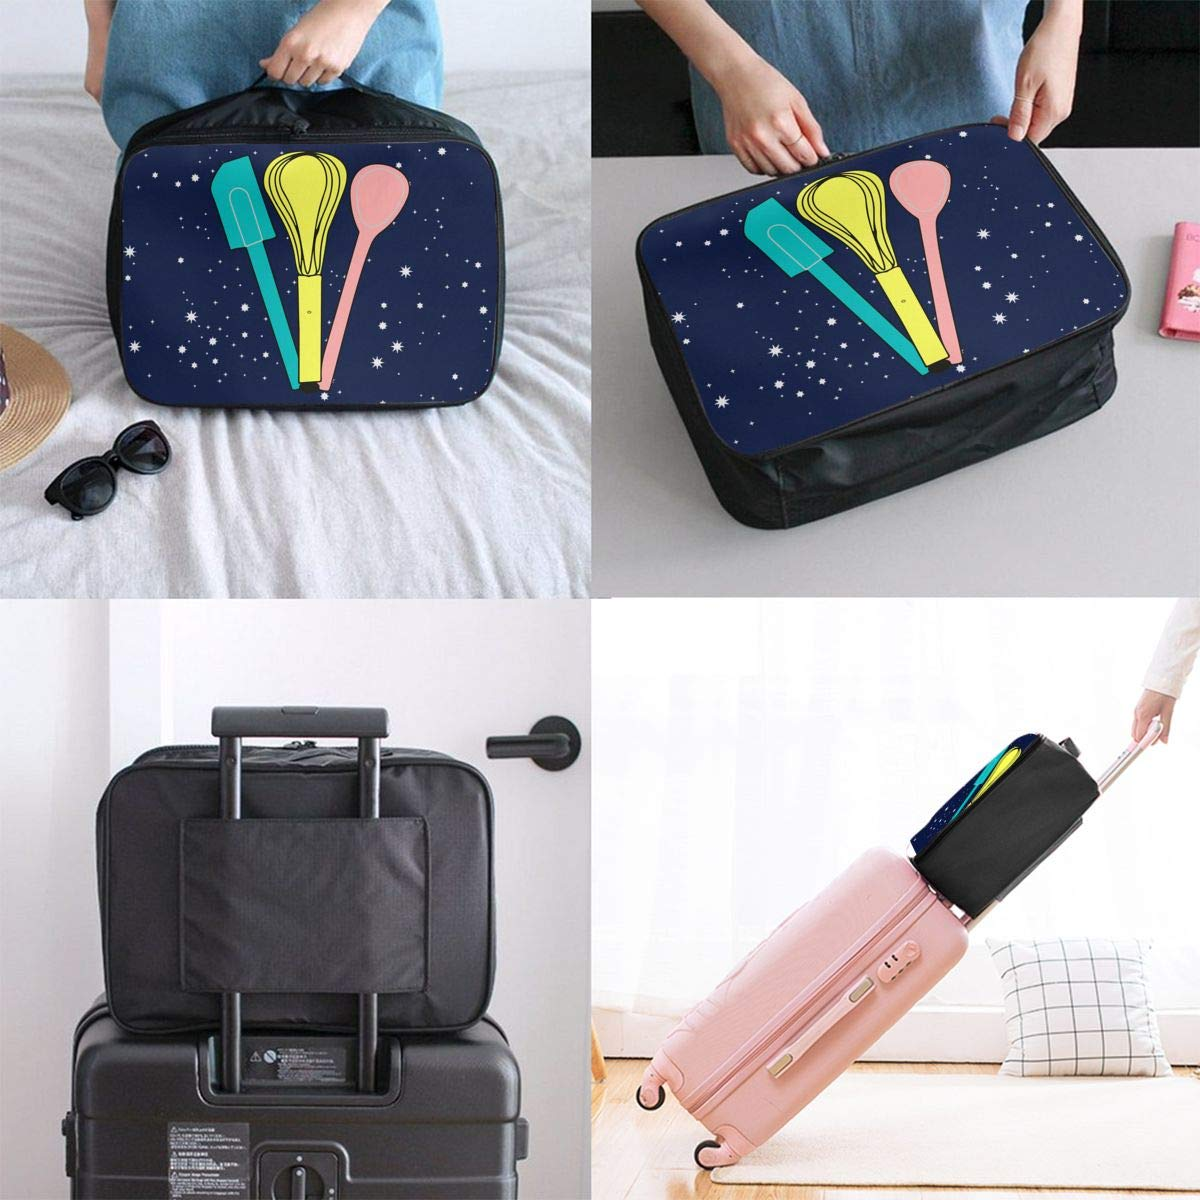 Baking Utensils Luggage Bag Capacity Portable Large Travel Duffel Bag Travel Organizer